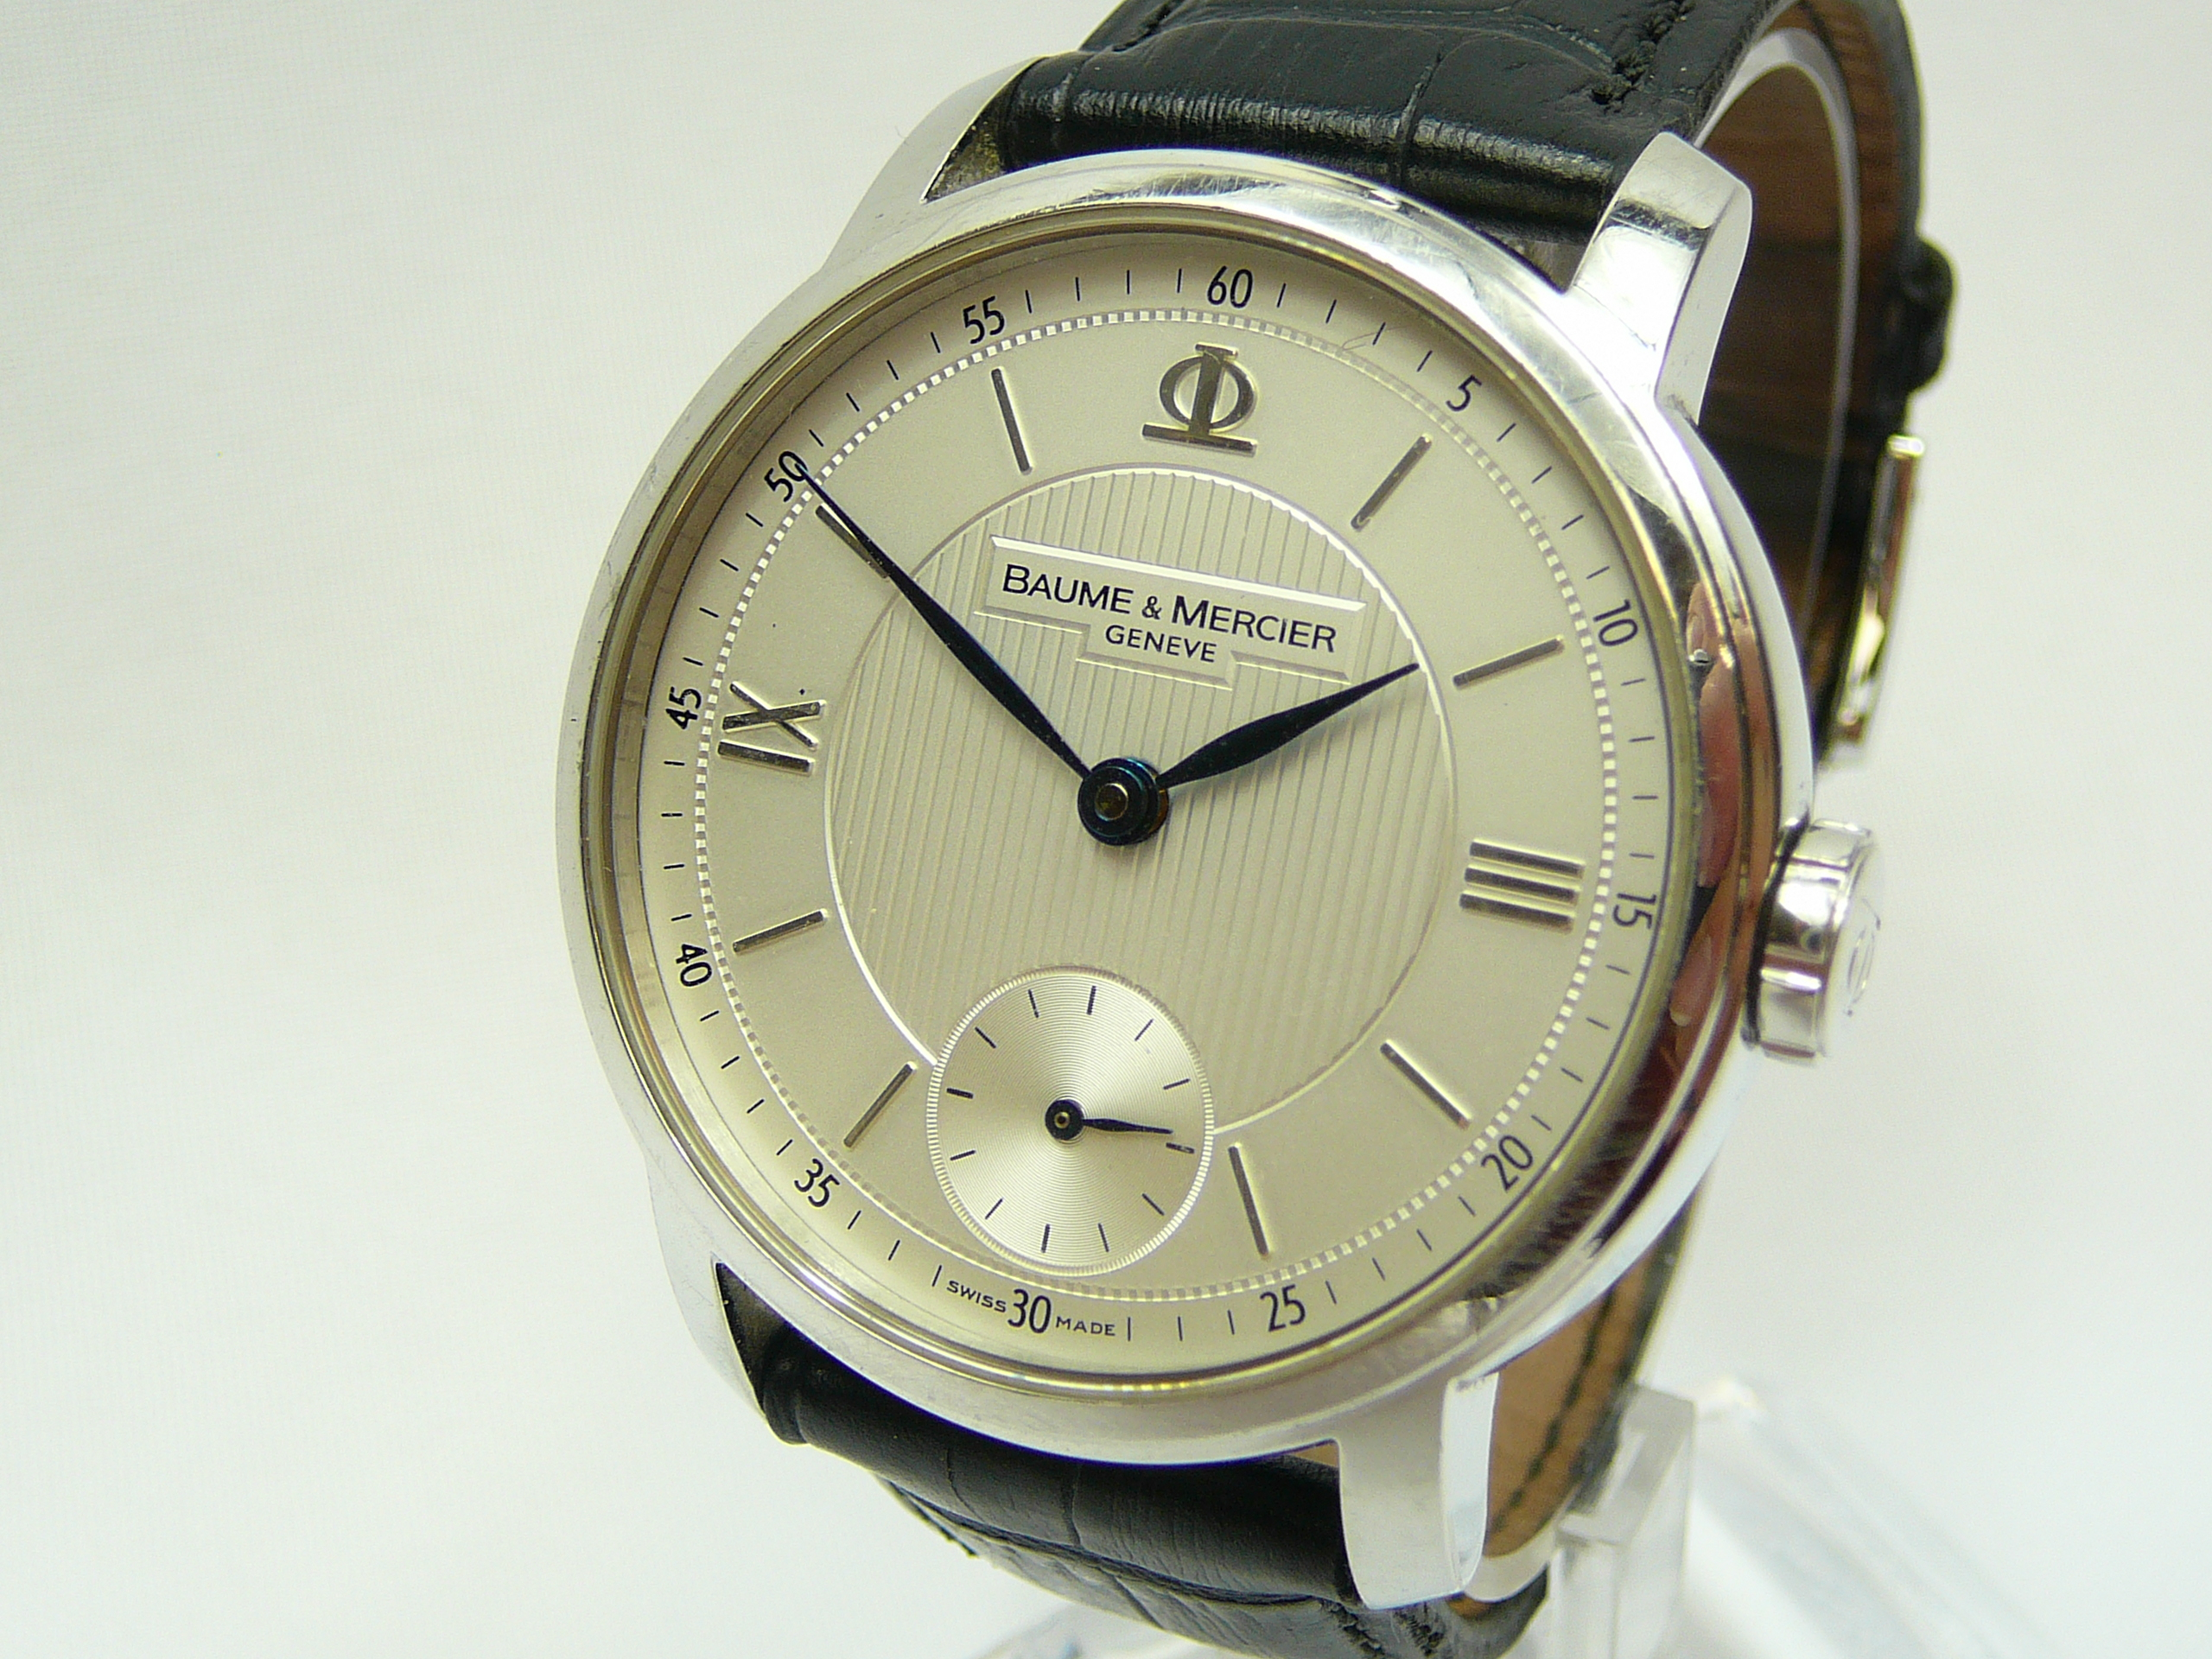 Gents Baume and Mercier Wrist Watch - Image 2 of 4